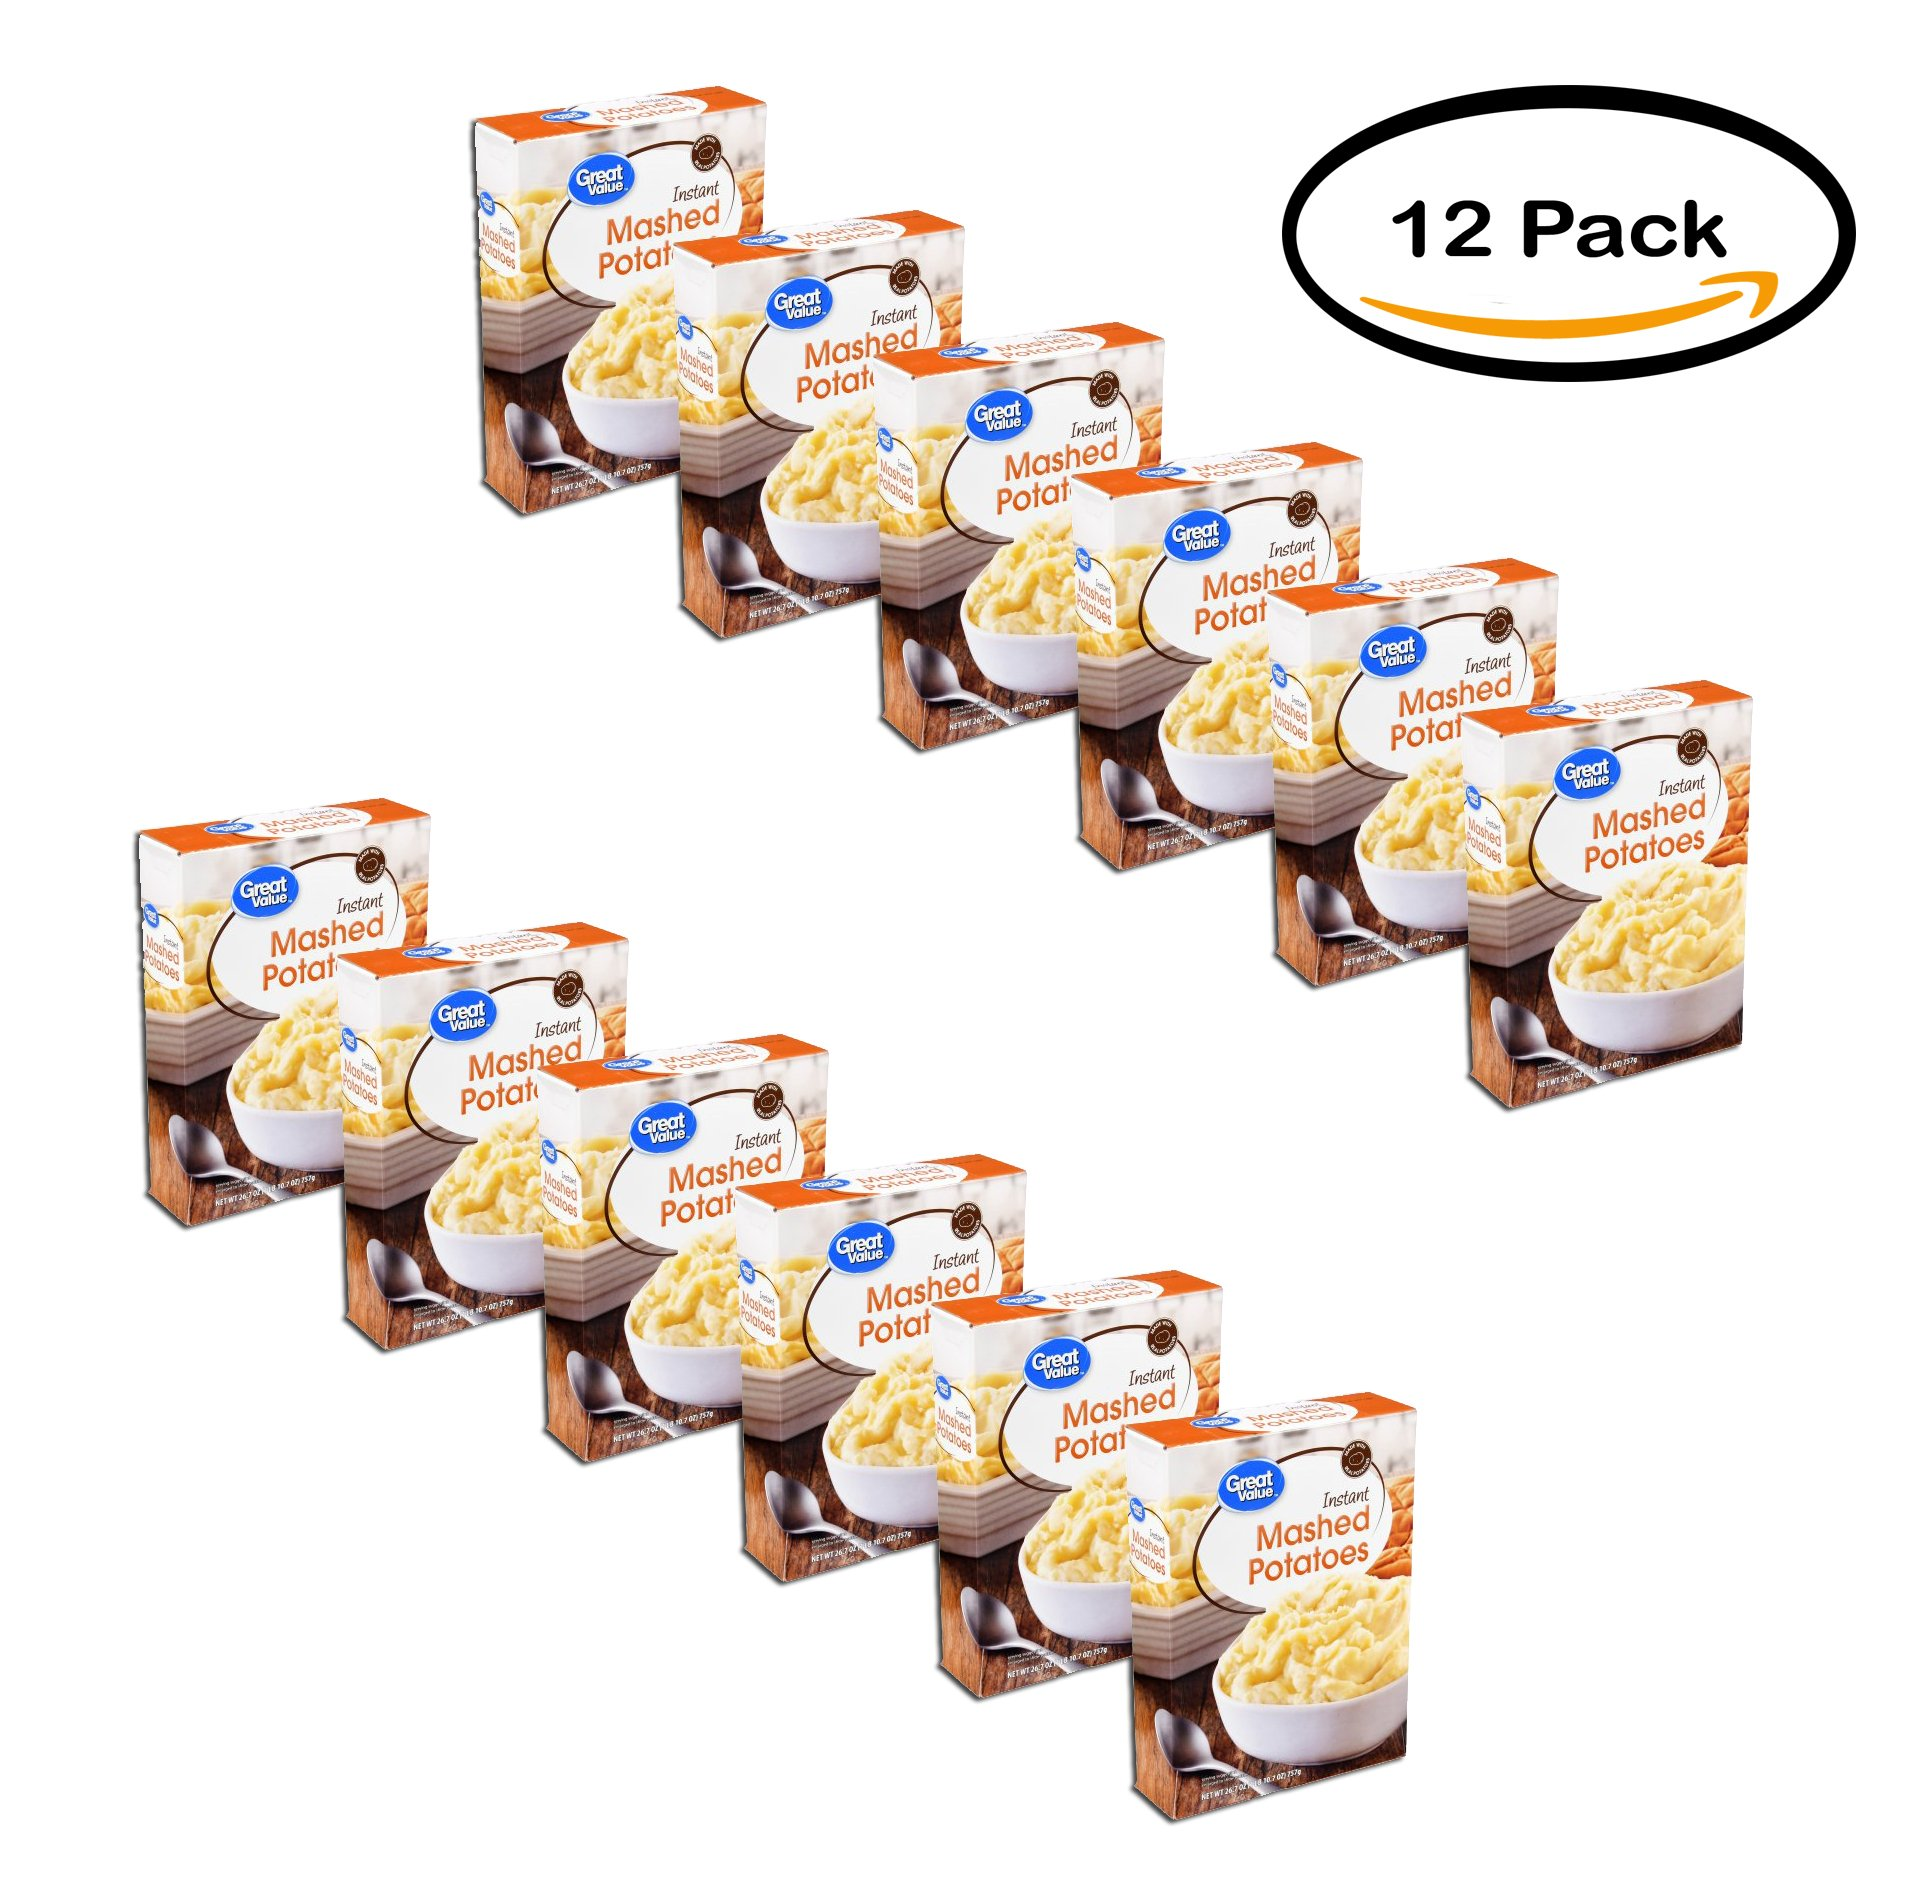 PACK OF 12 - Great Value Mashed Potatoes, 26.7 oz